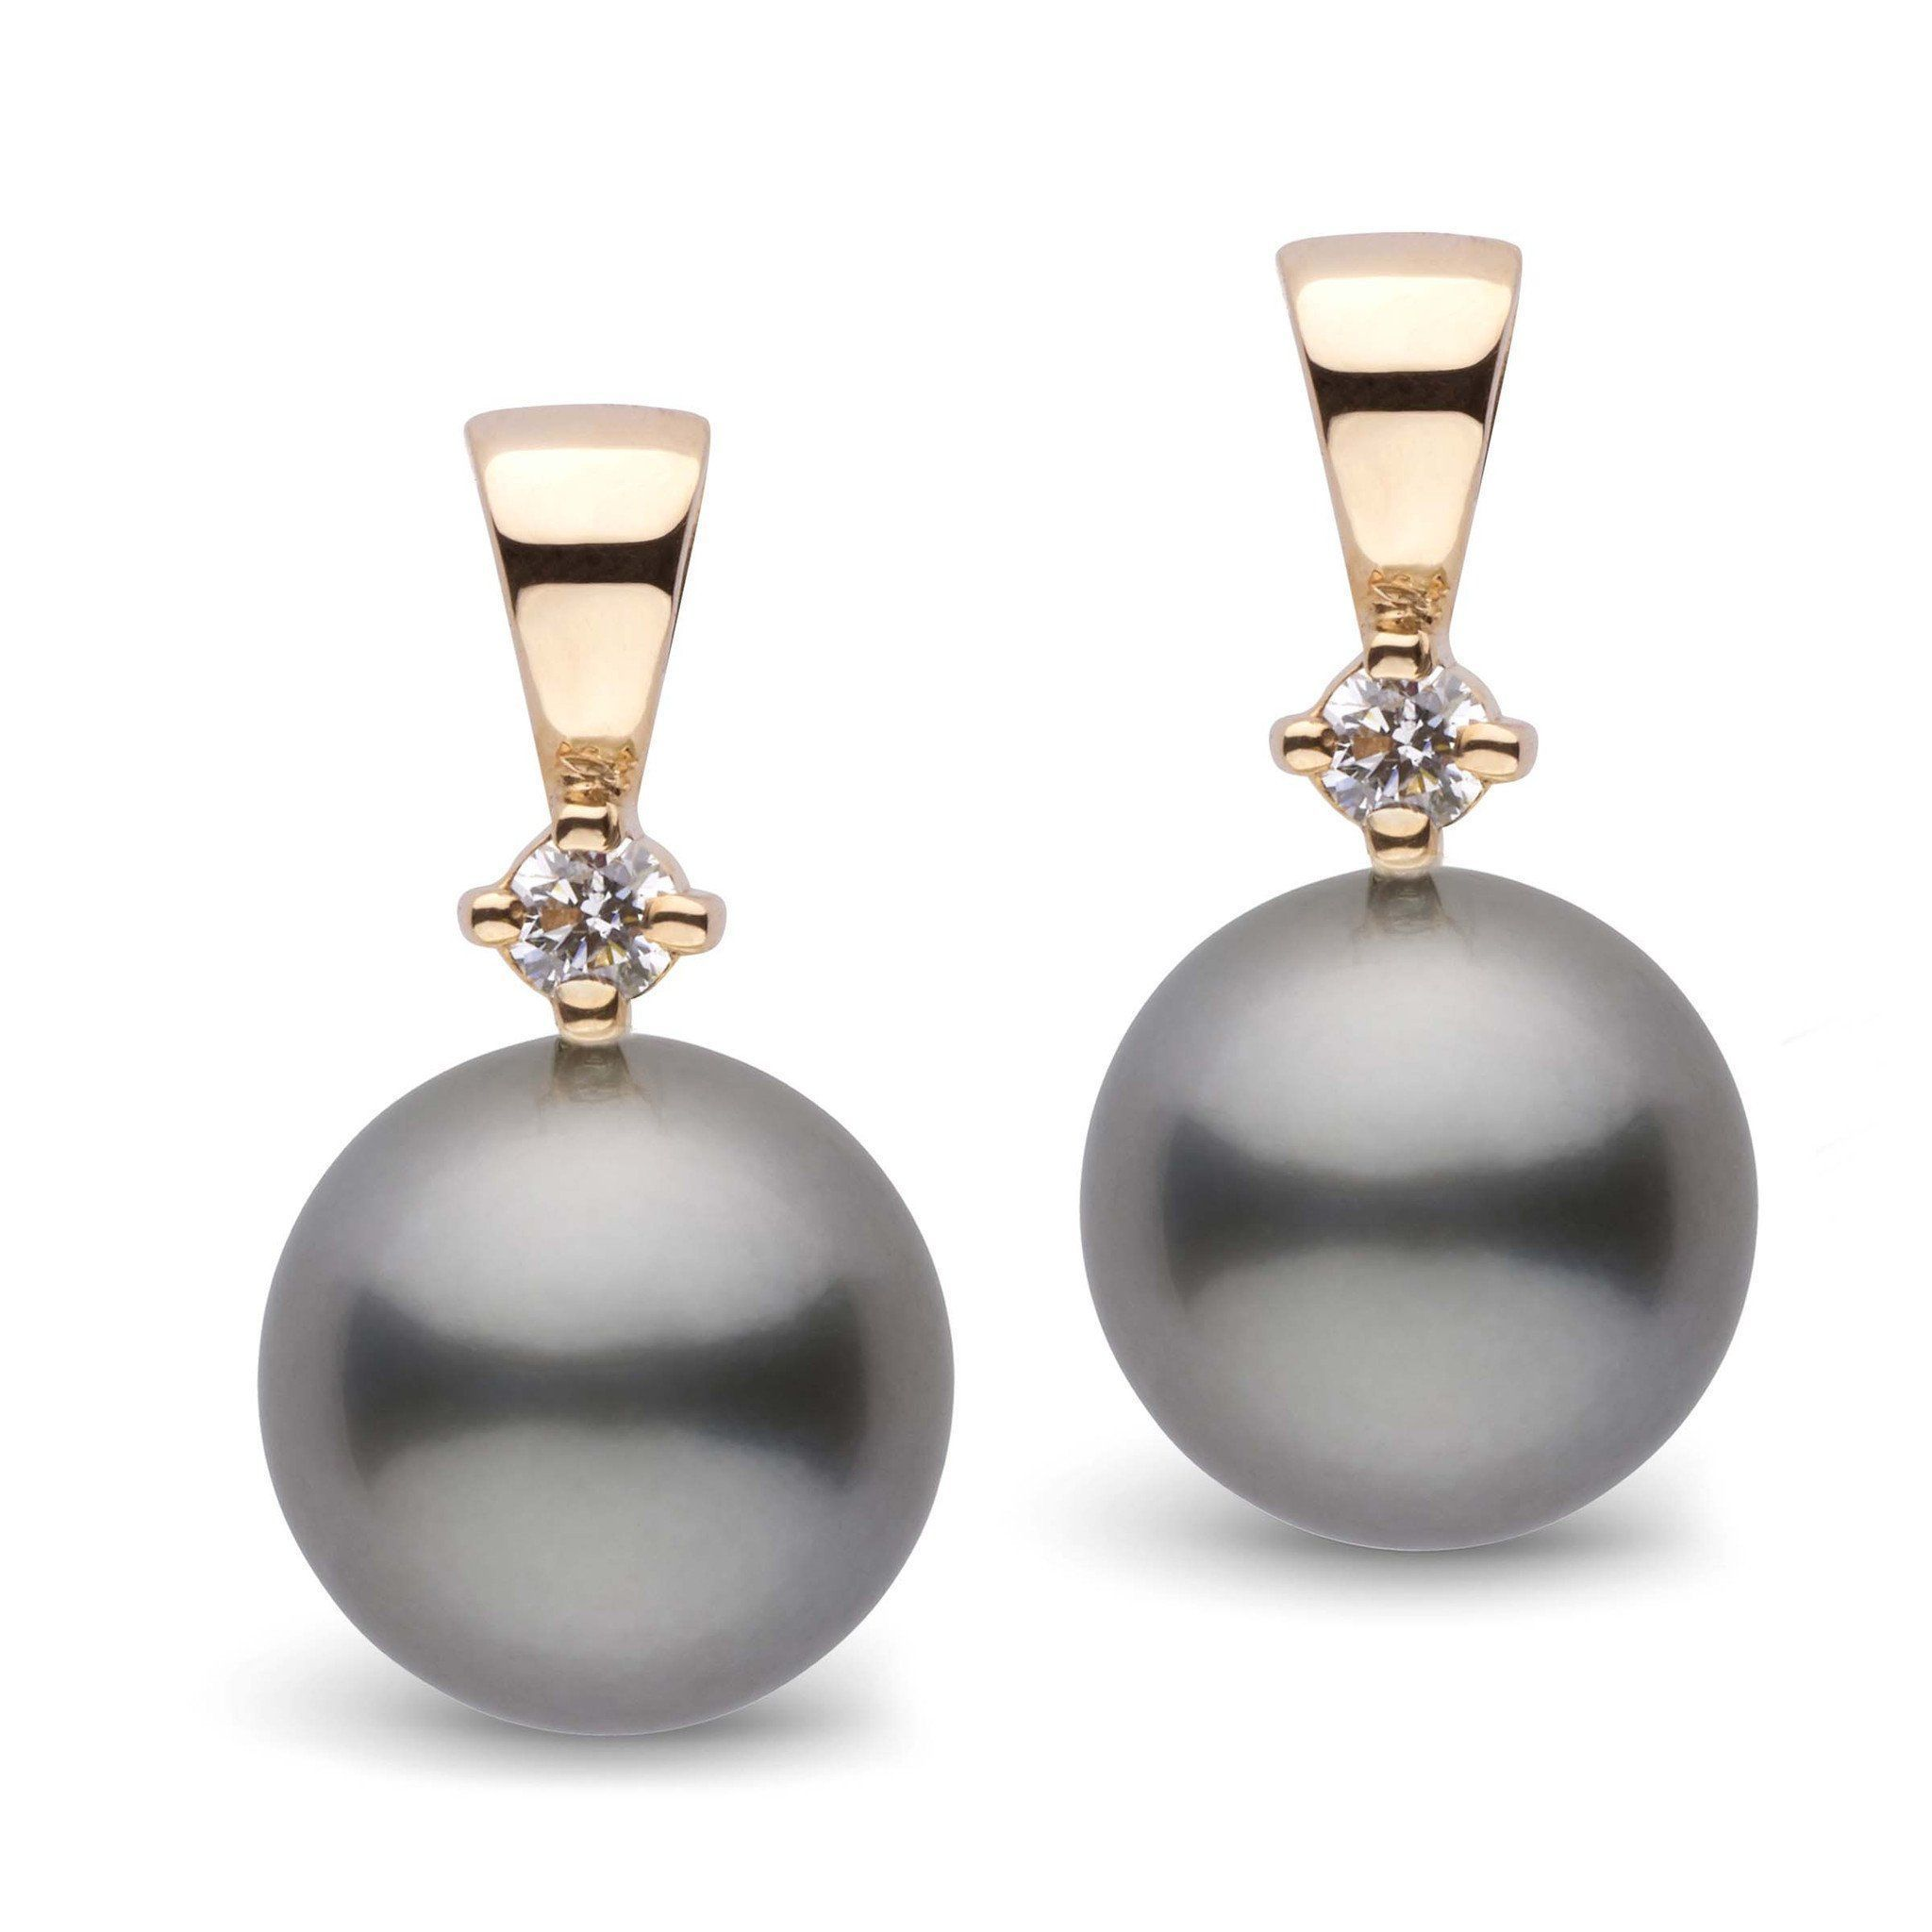 Nobility Collection Tahitian 10.0-11.0 mm Pearl and Diamond Earrings